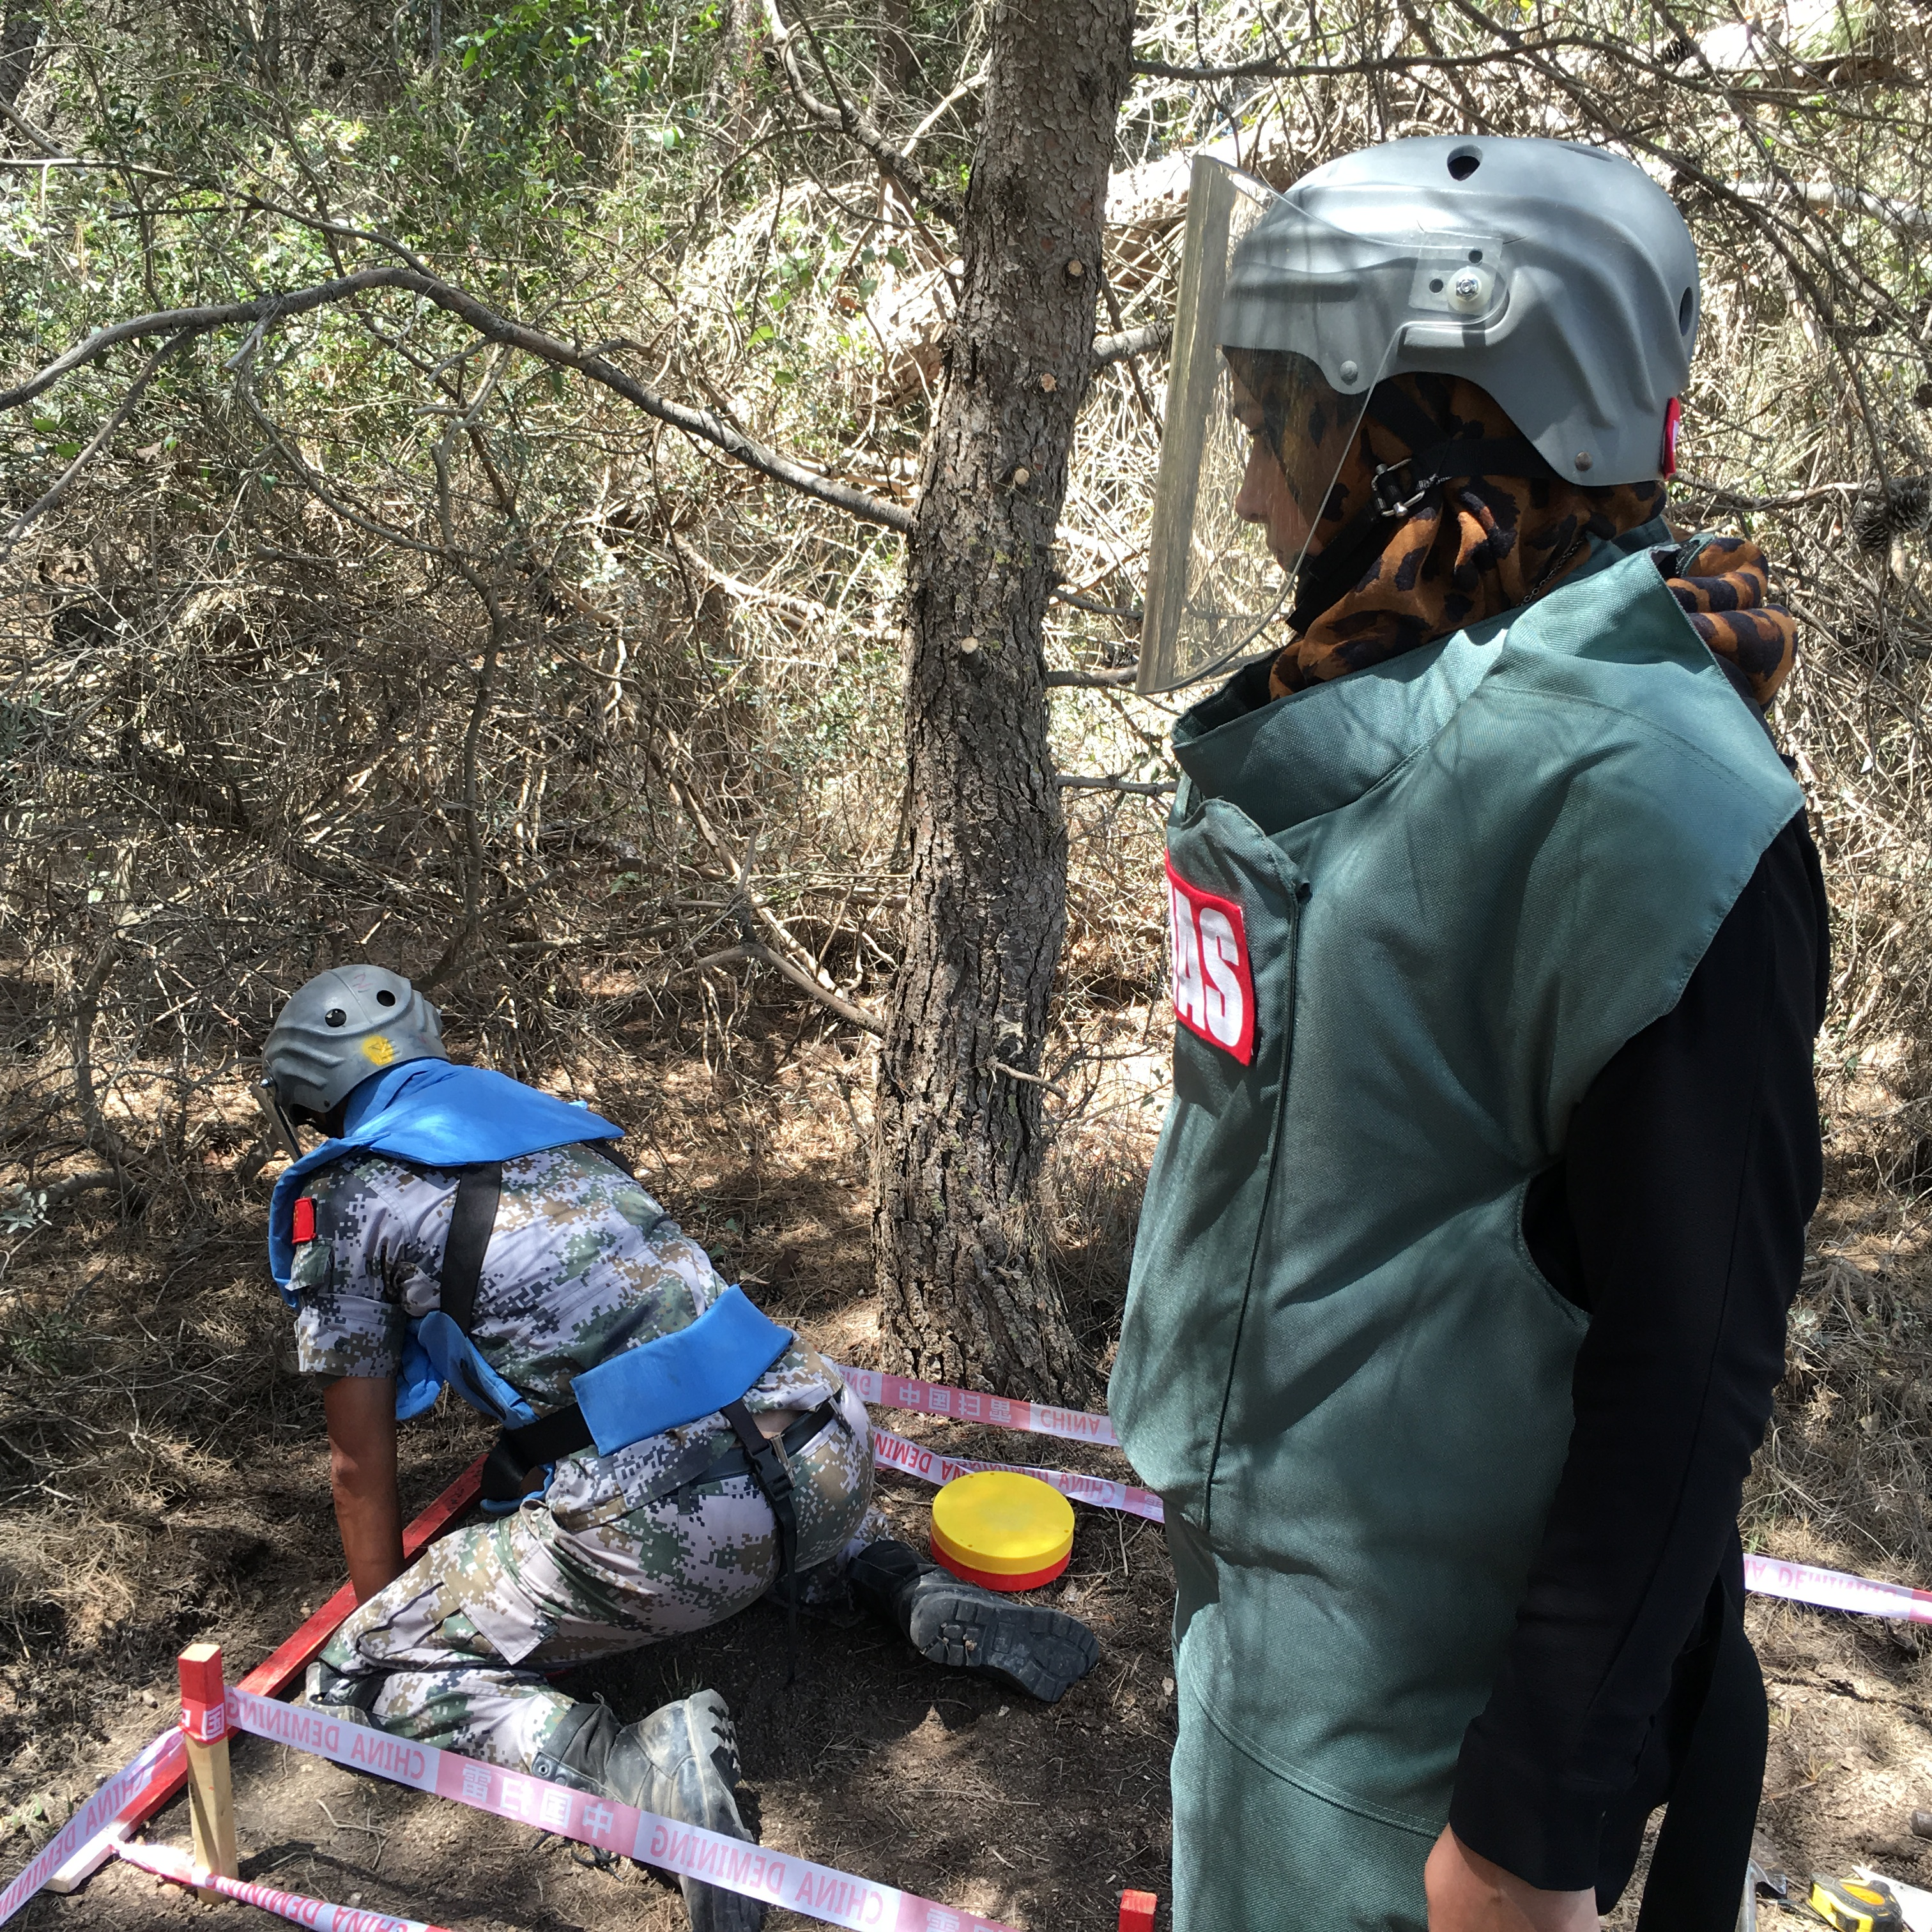 UNMAS Lebanon QA officer is conducting quality assurance on mine clearance procedures on Chinese deminer to make sure it is conducted in line with SOP